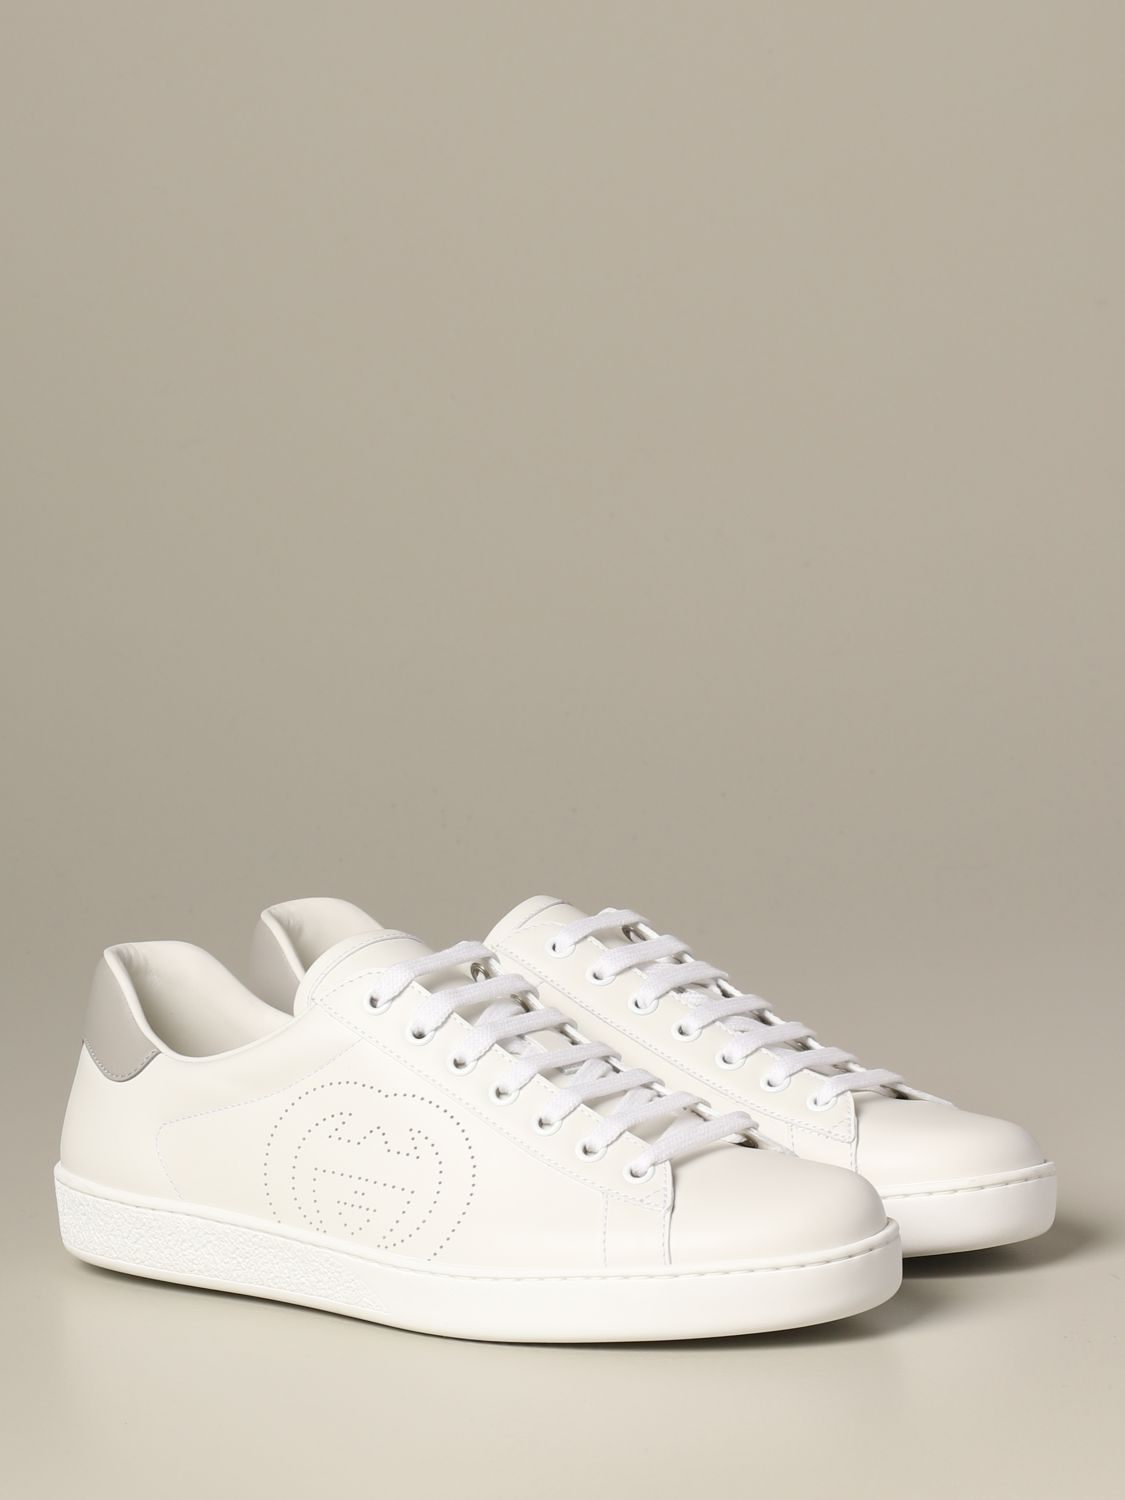 Gucci Ace leather sneakers with colored